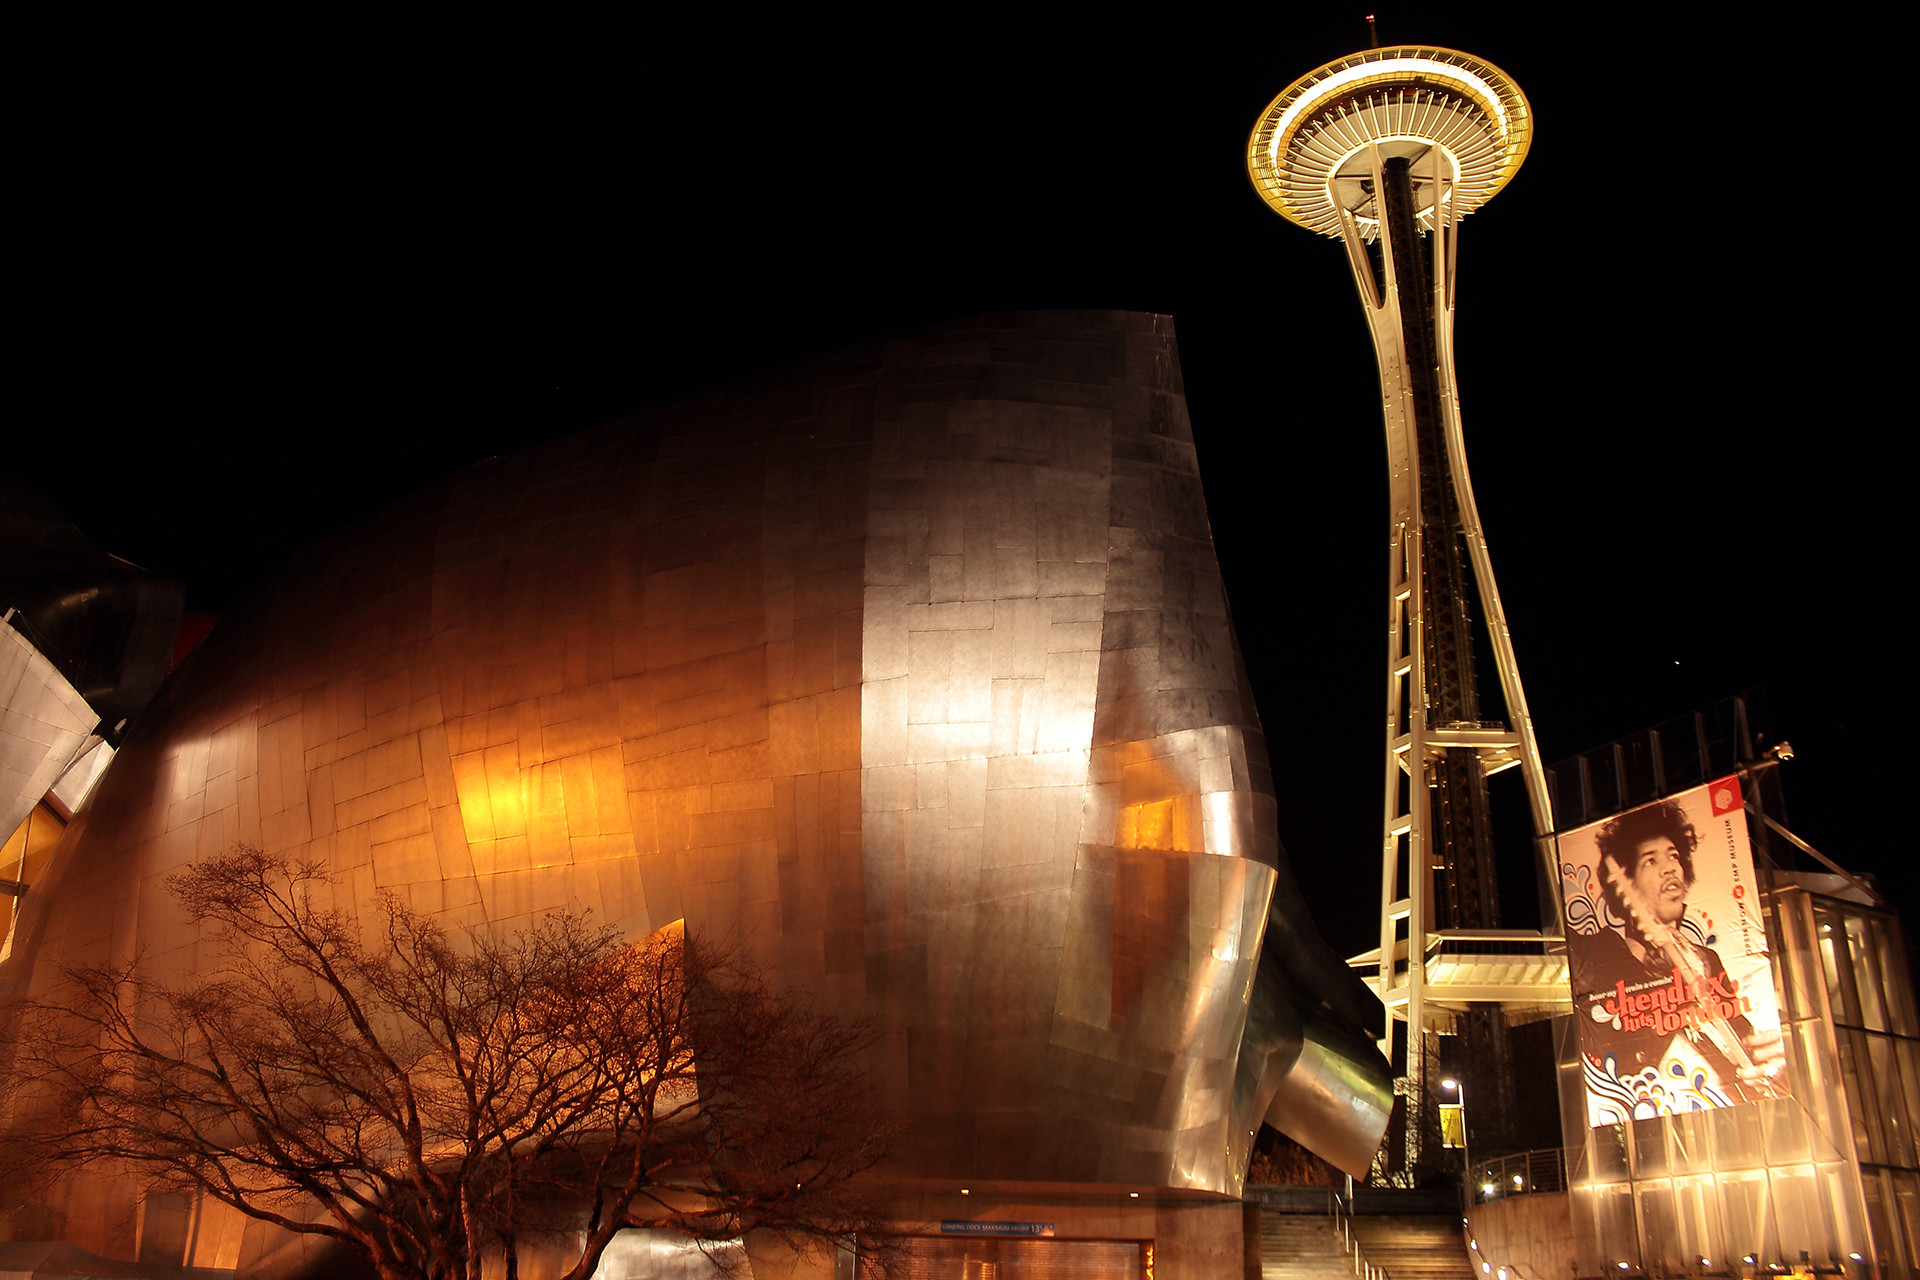 Reha sakar space needle